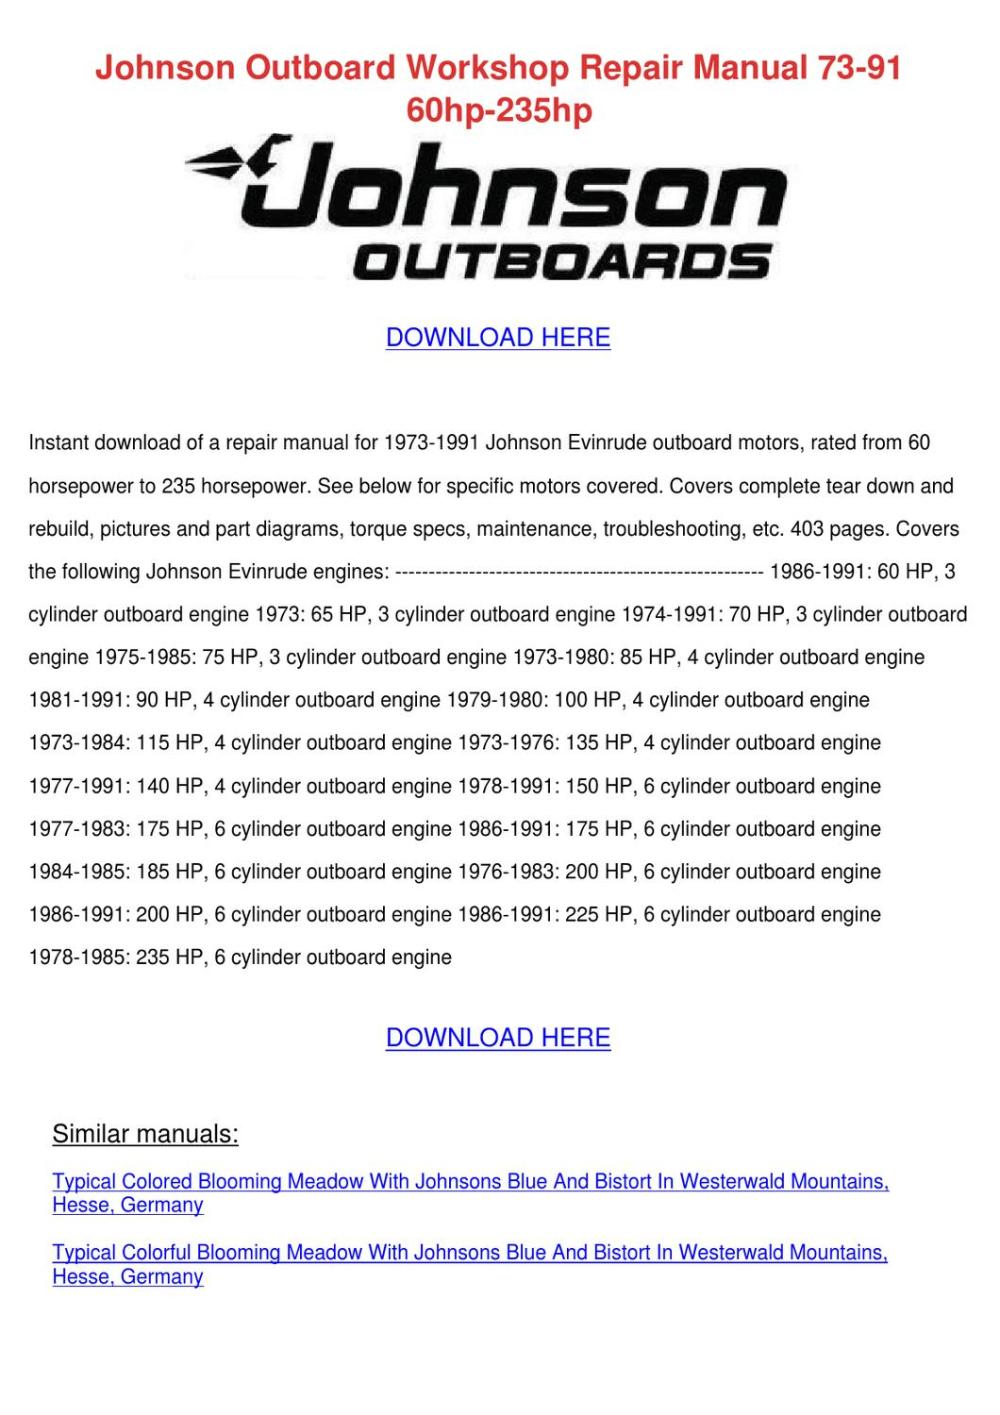 medium resolution of johnson outboard workshop repair manual 73 91 by beckyweatherford issuu